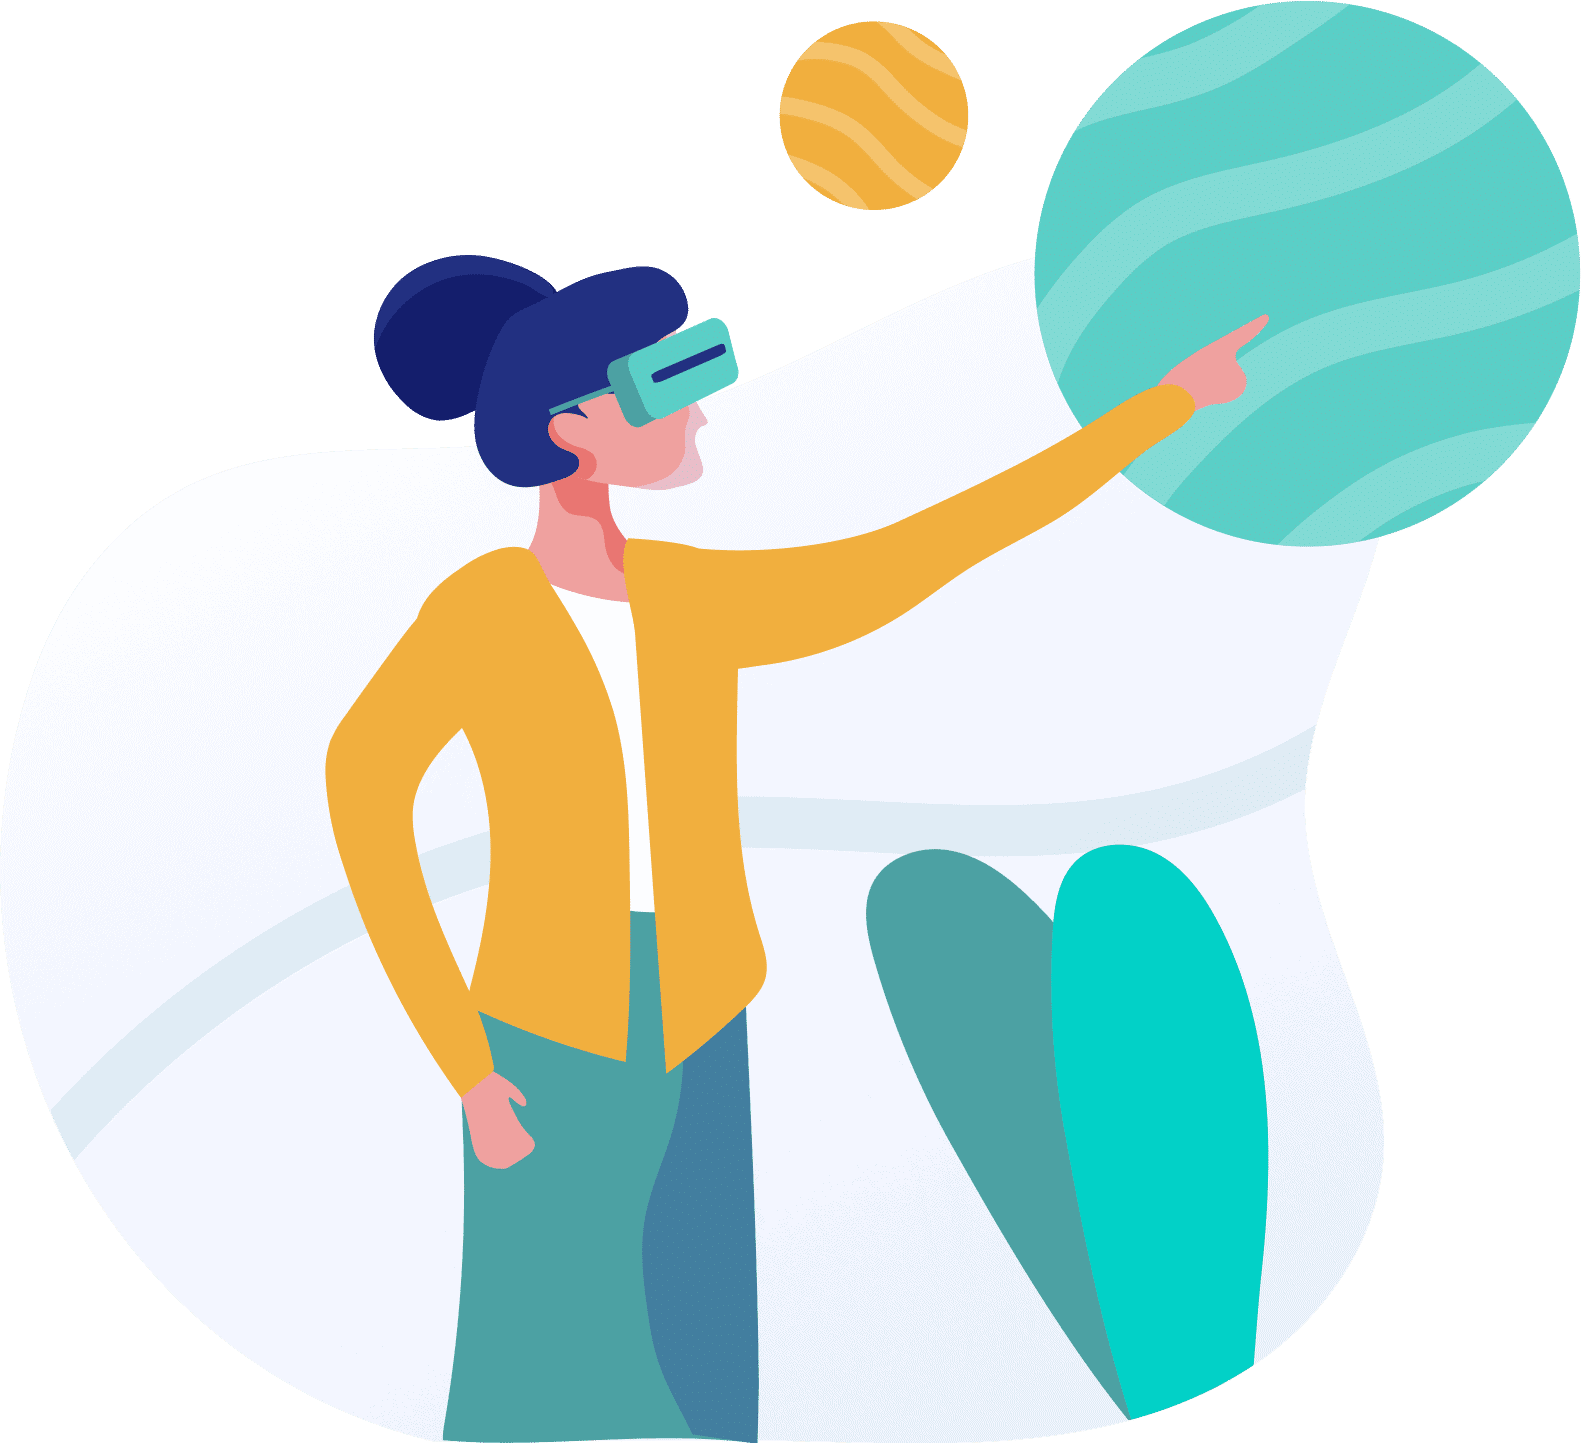 AR and VR technologies can be used for a variety of UX methods featured by WANDR UX Design Firm and Product Strategy